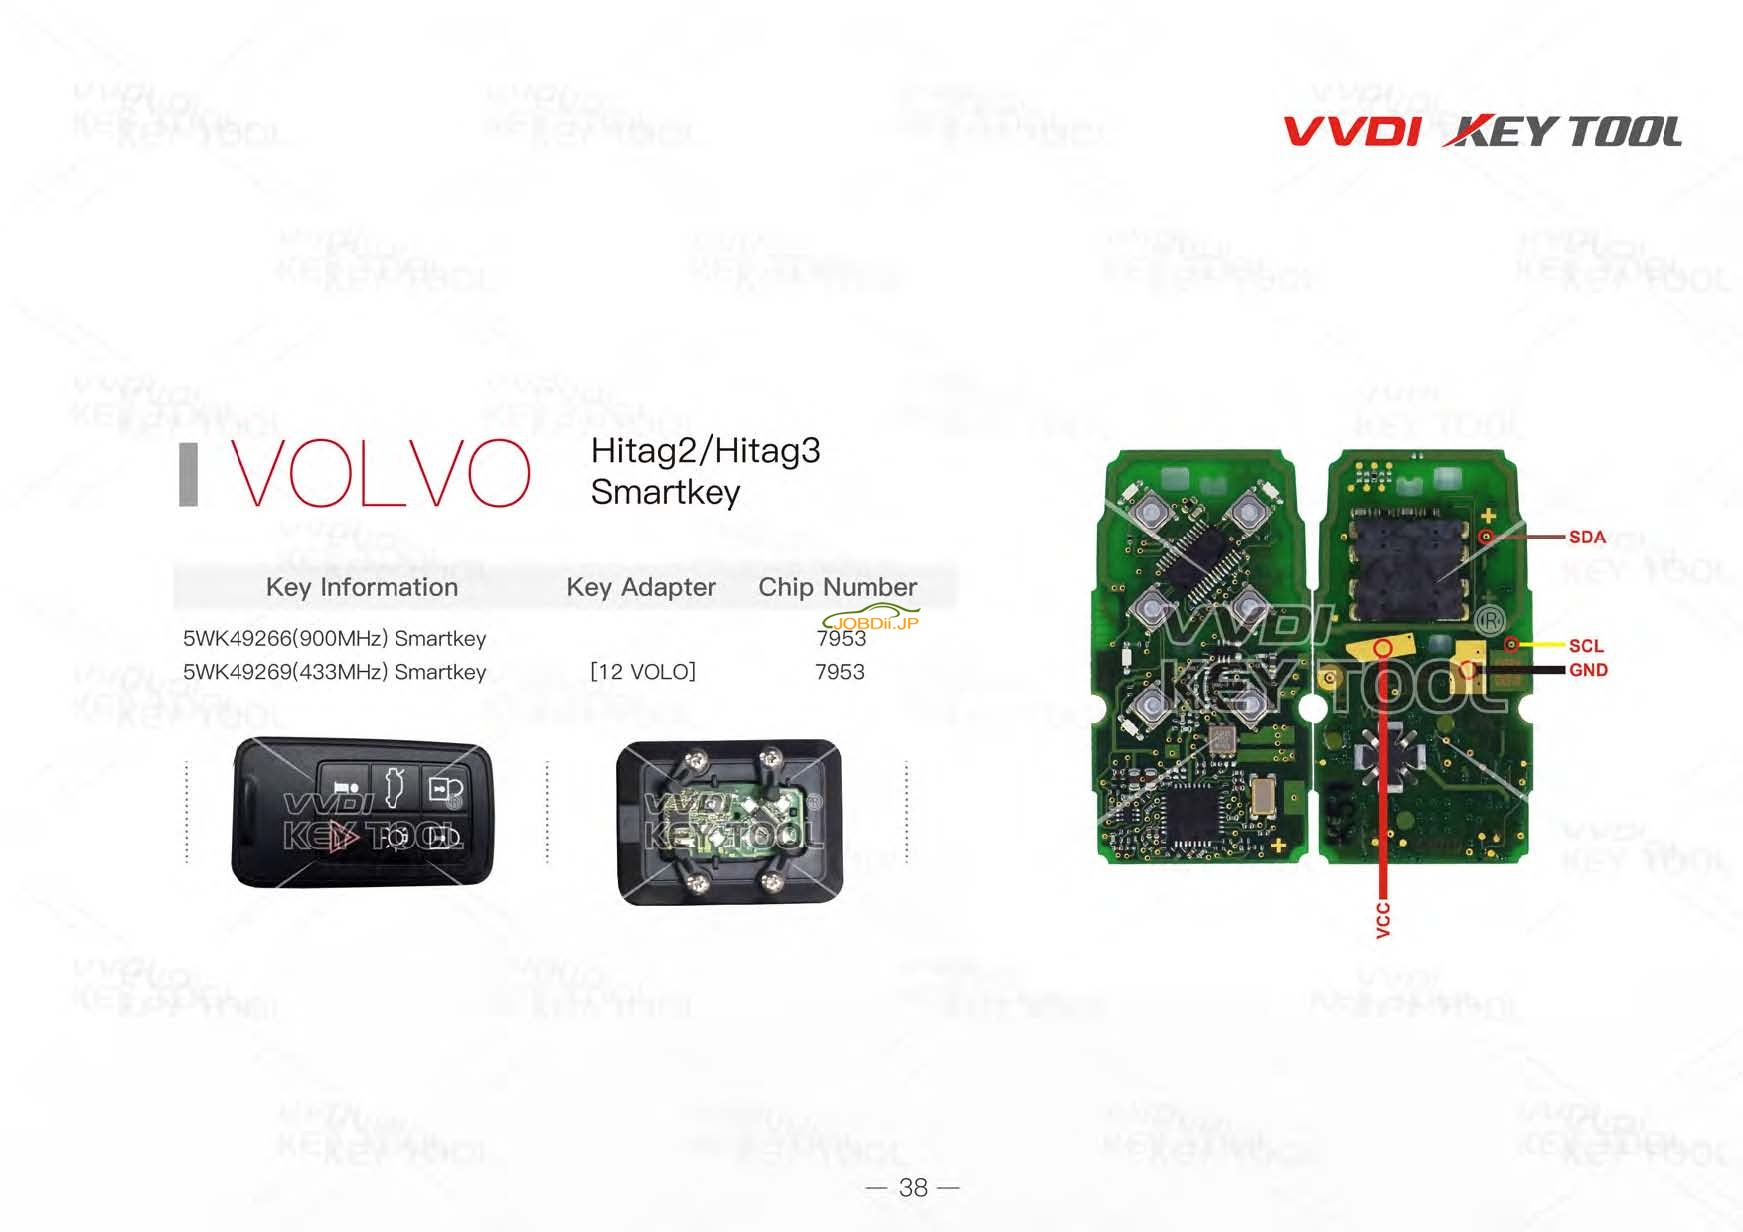 vvdi-key-tool-renew-diagram-38